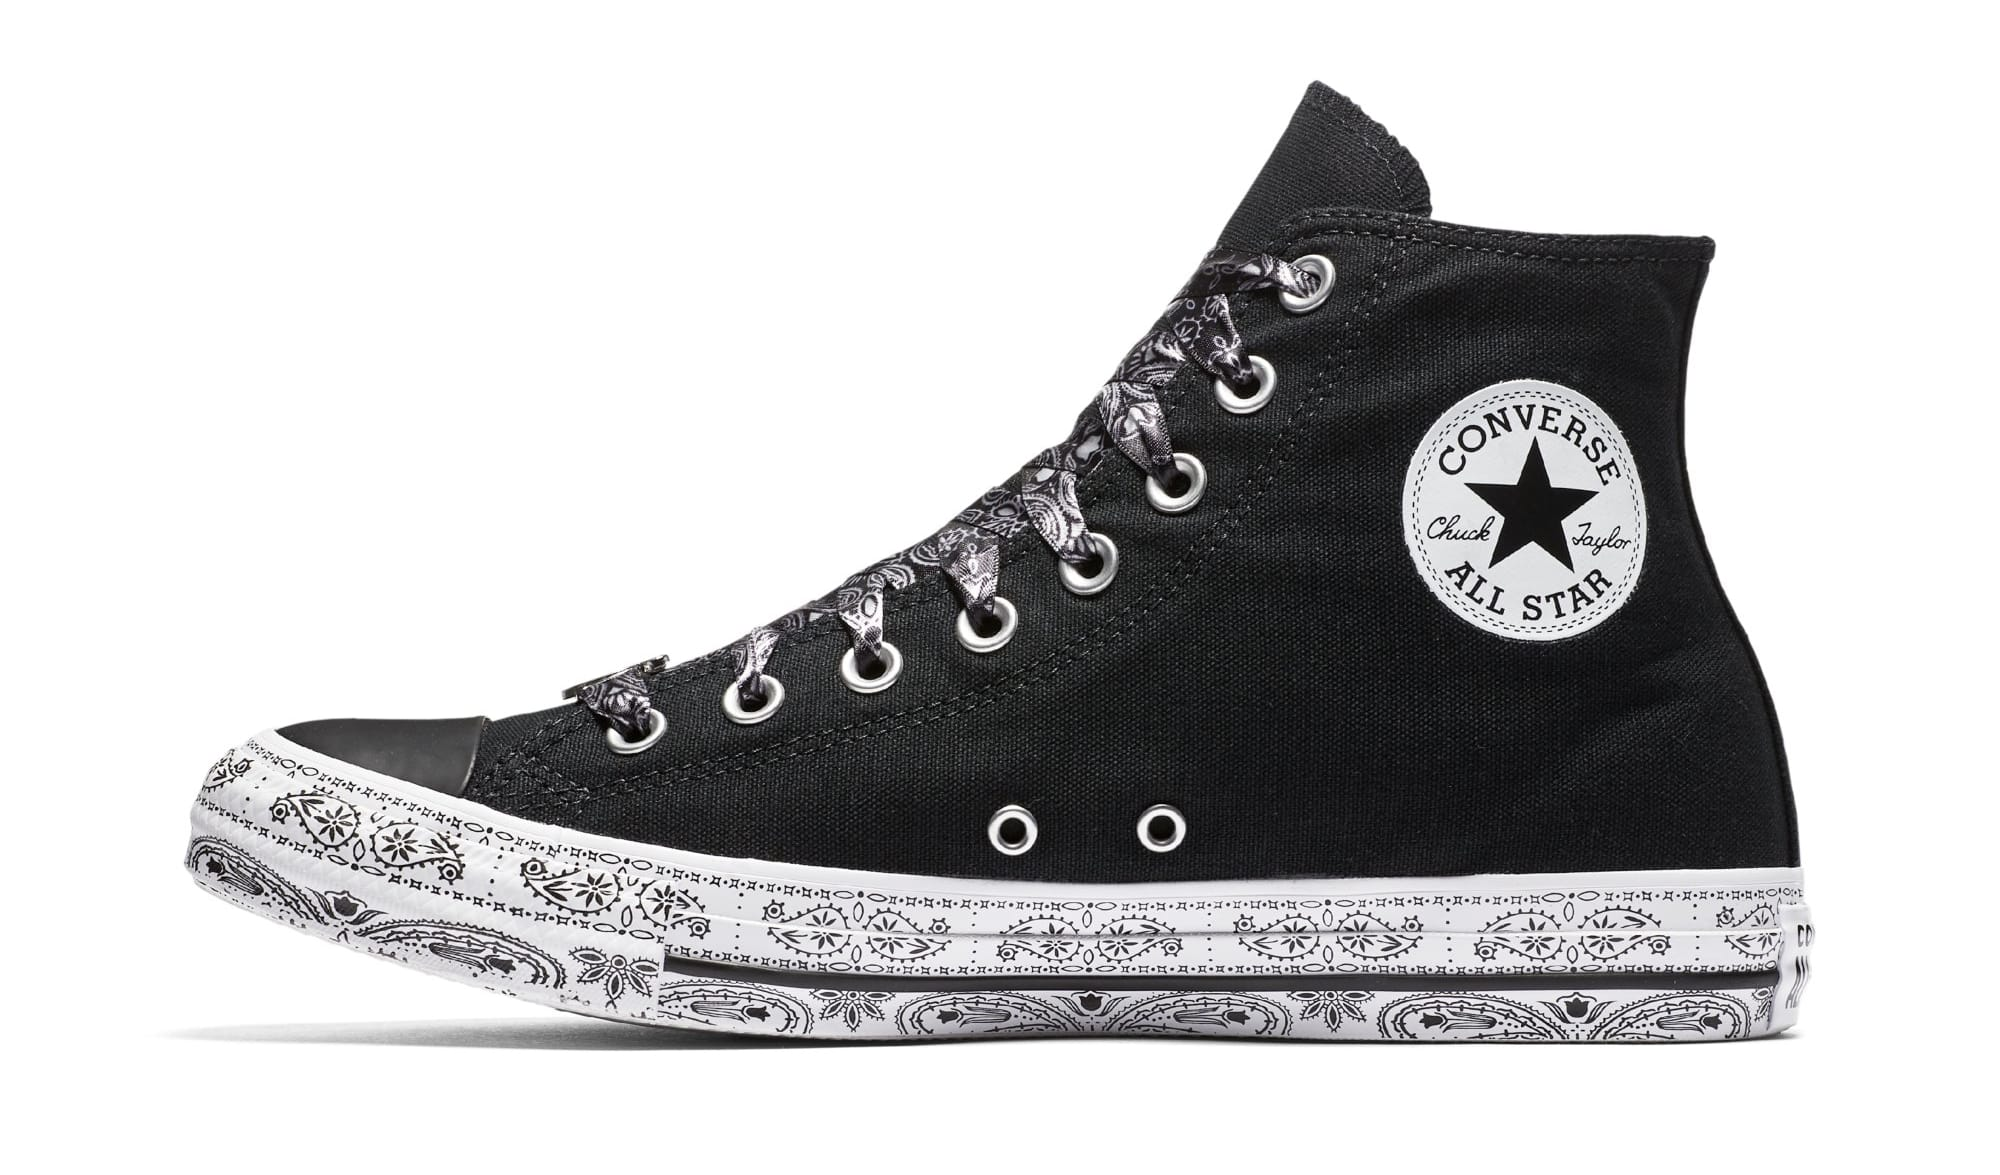 Figura Comprometido granero  Athletic Shoes 162234C Multi Sizes Black//Wh Women's Converse x Miley Cyrus  Chuck Taylor AS Hi Clothing, Shoes & Accessories vishawatch.com